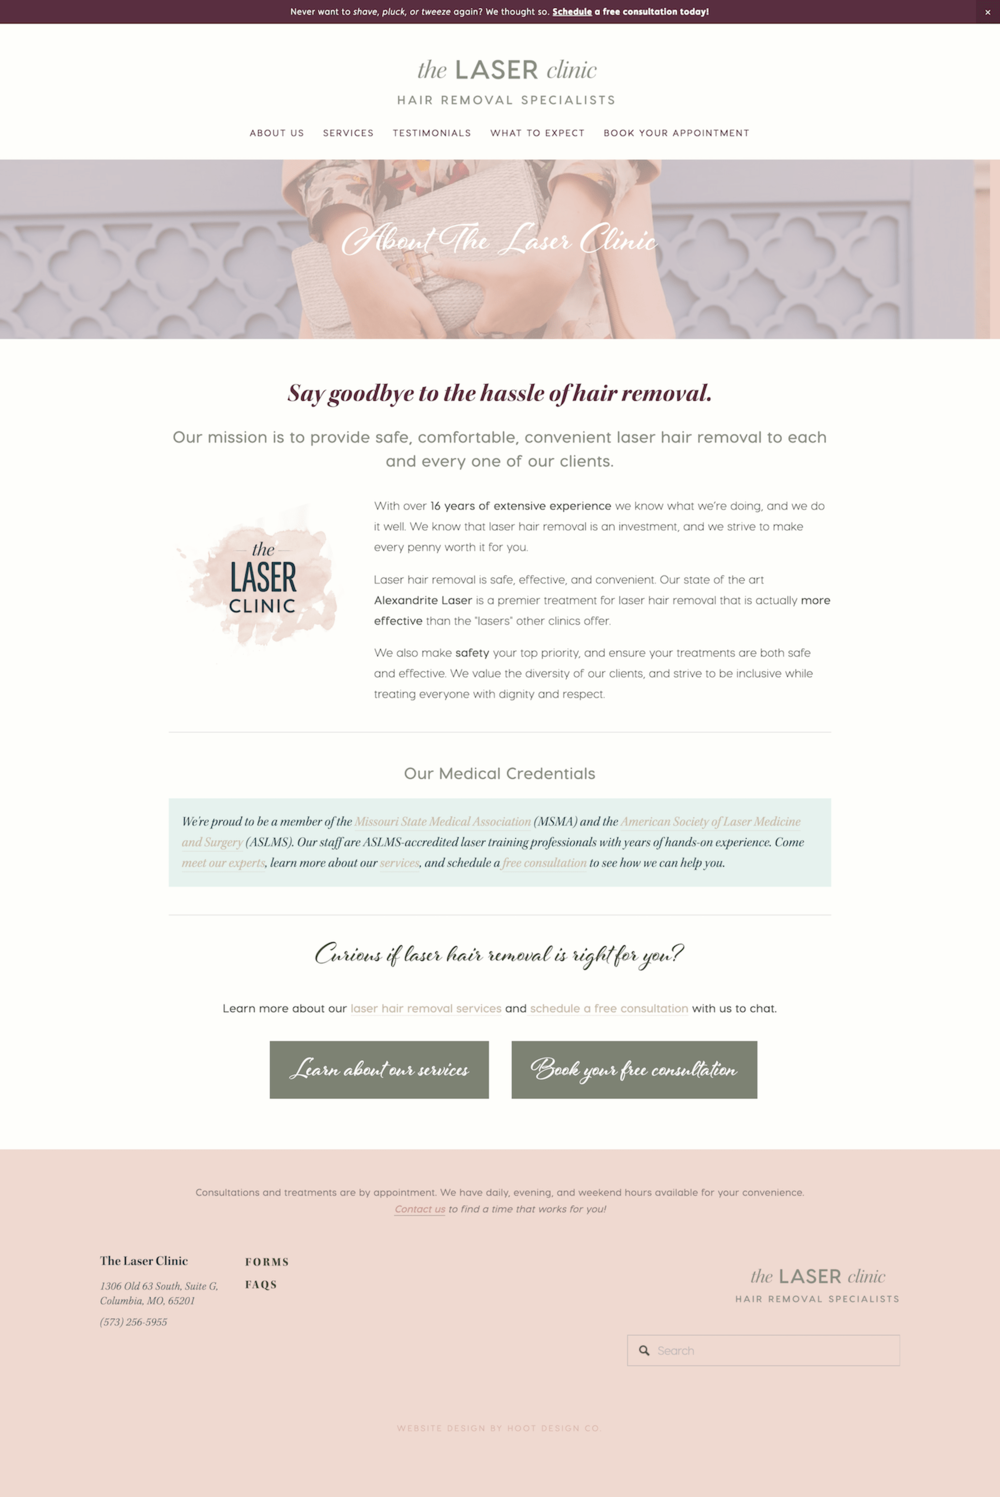 AFTER our redesign of the laser clinic's brand and website